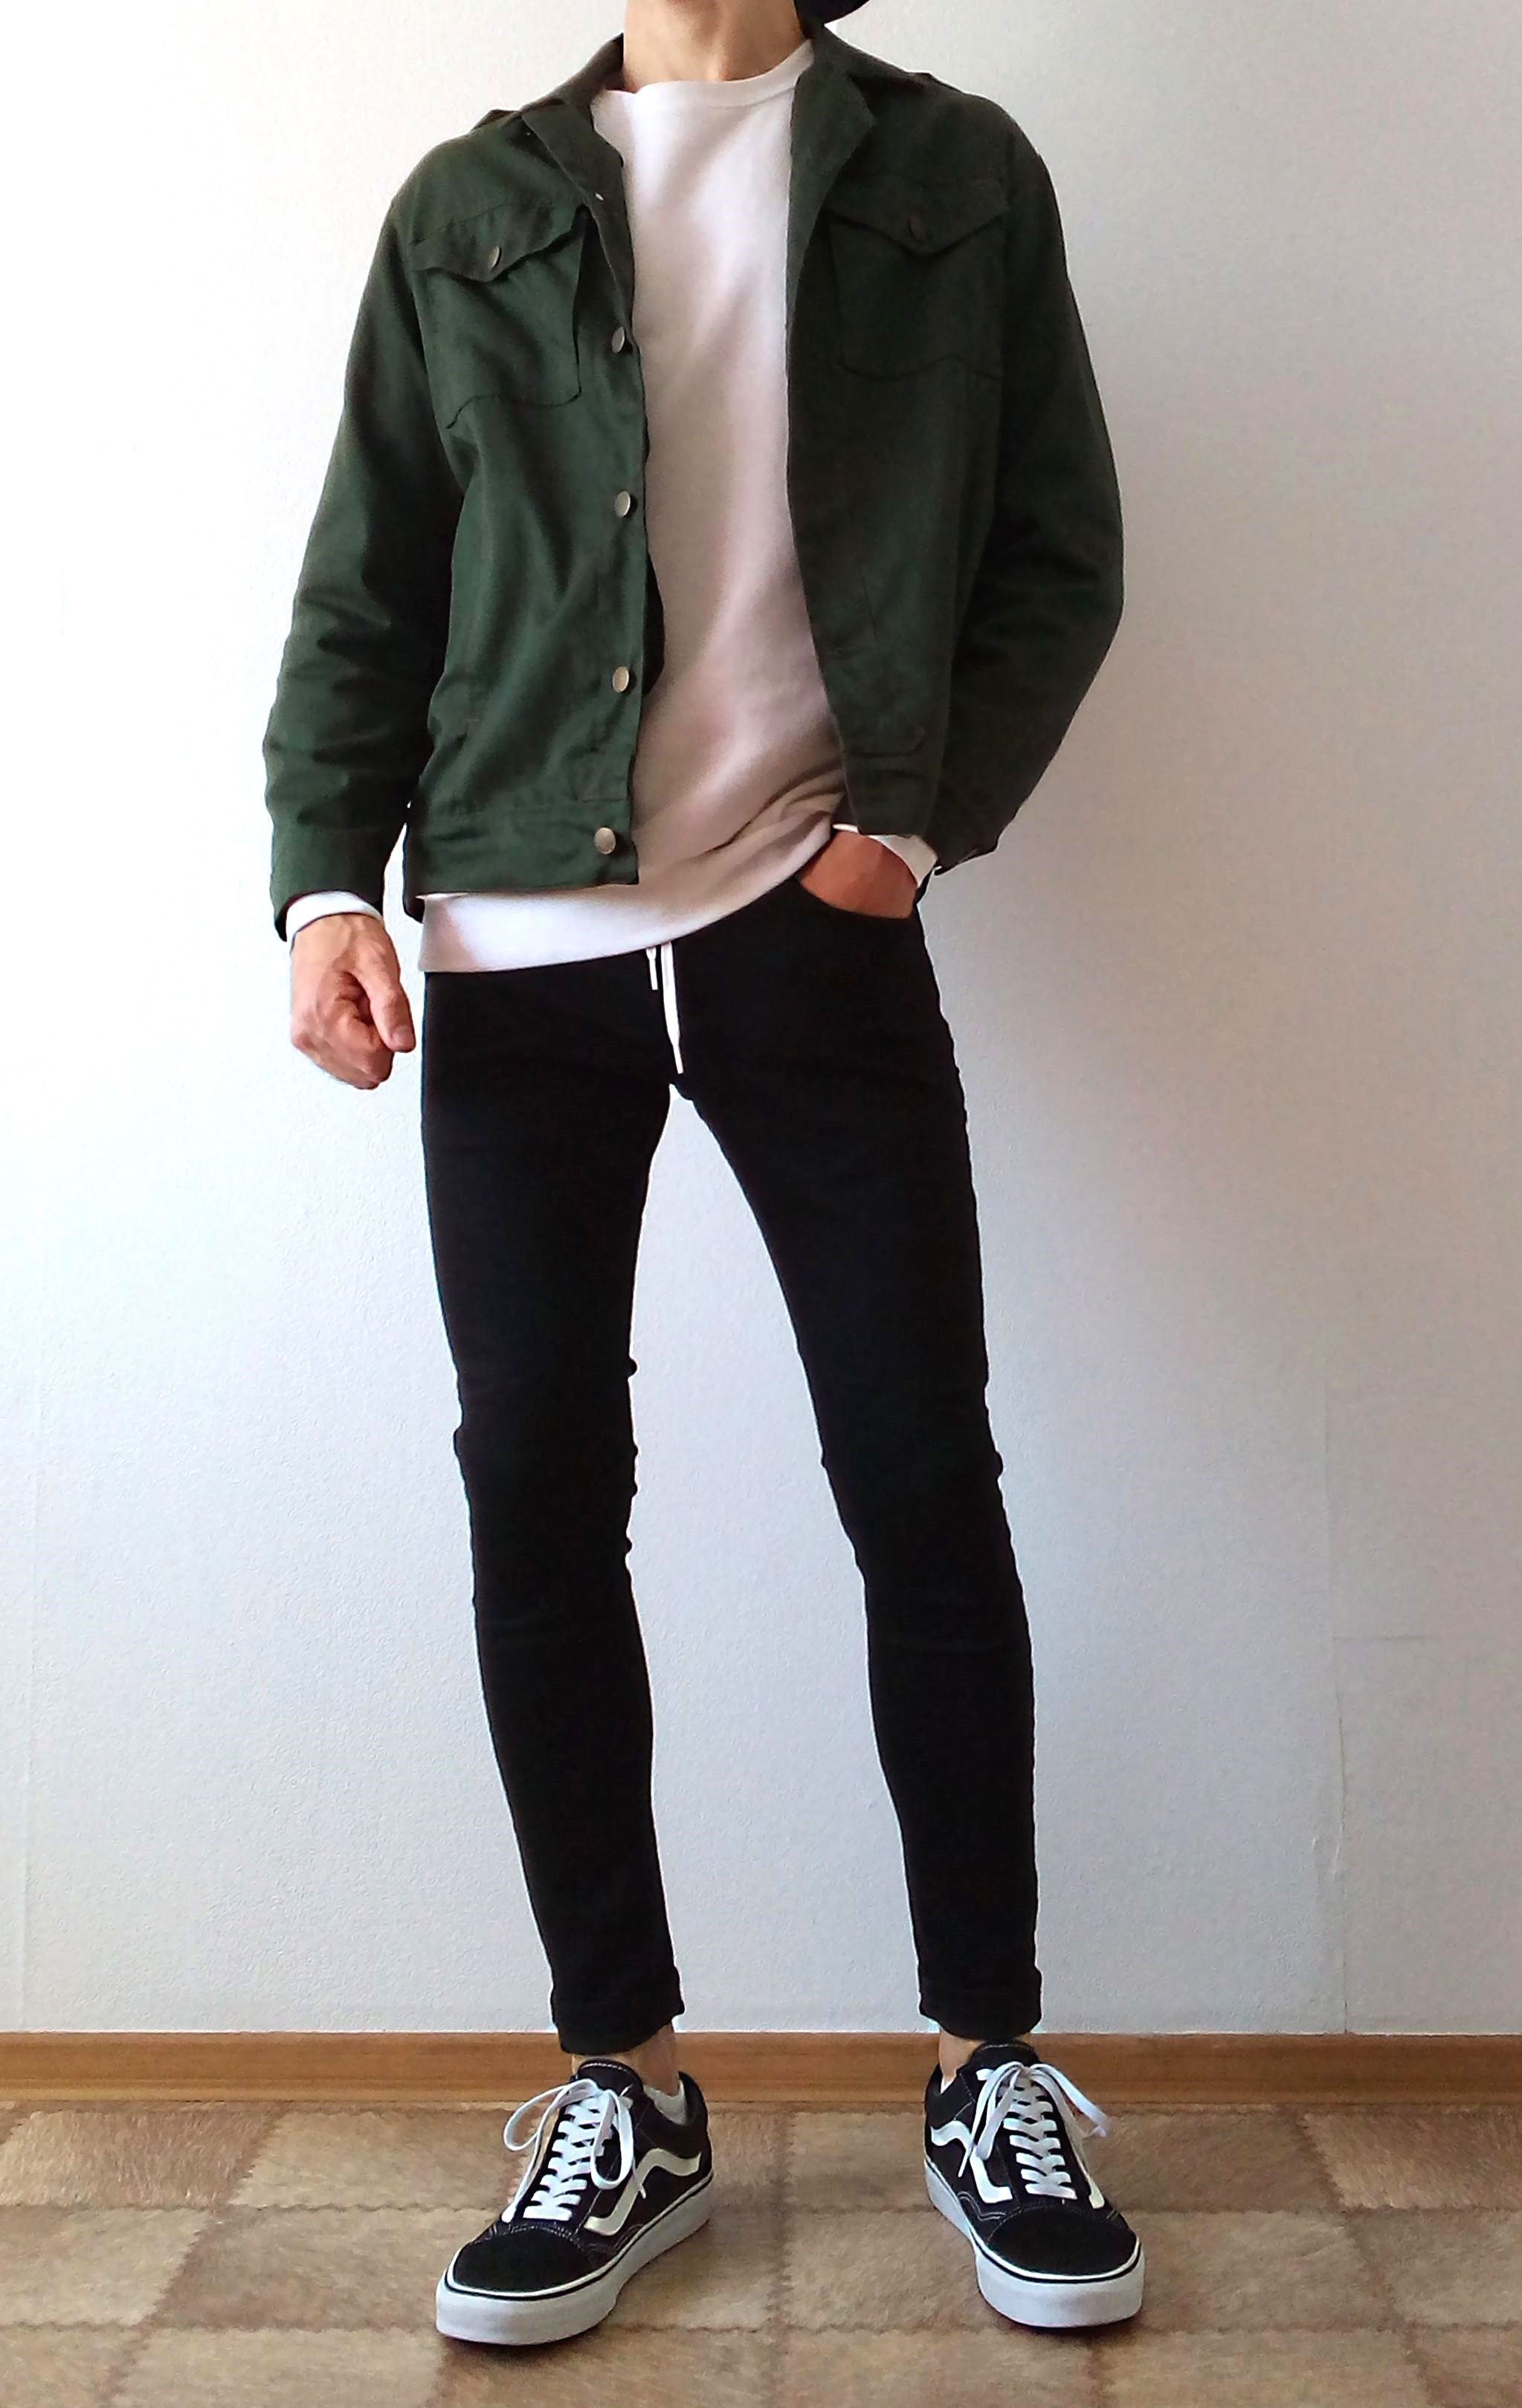 vans old skool black skinny jeans boys guys outfit | Mens